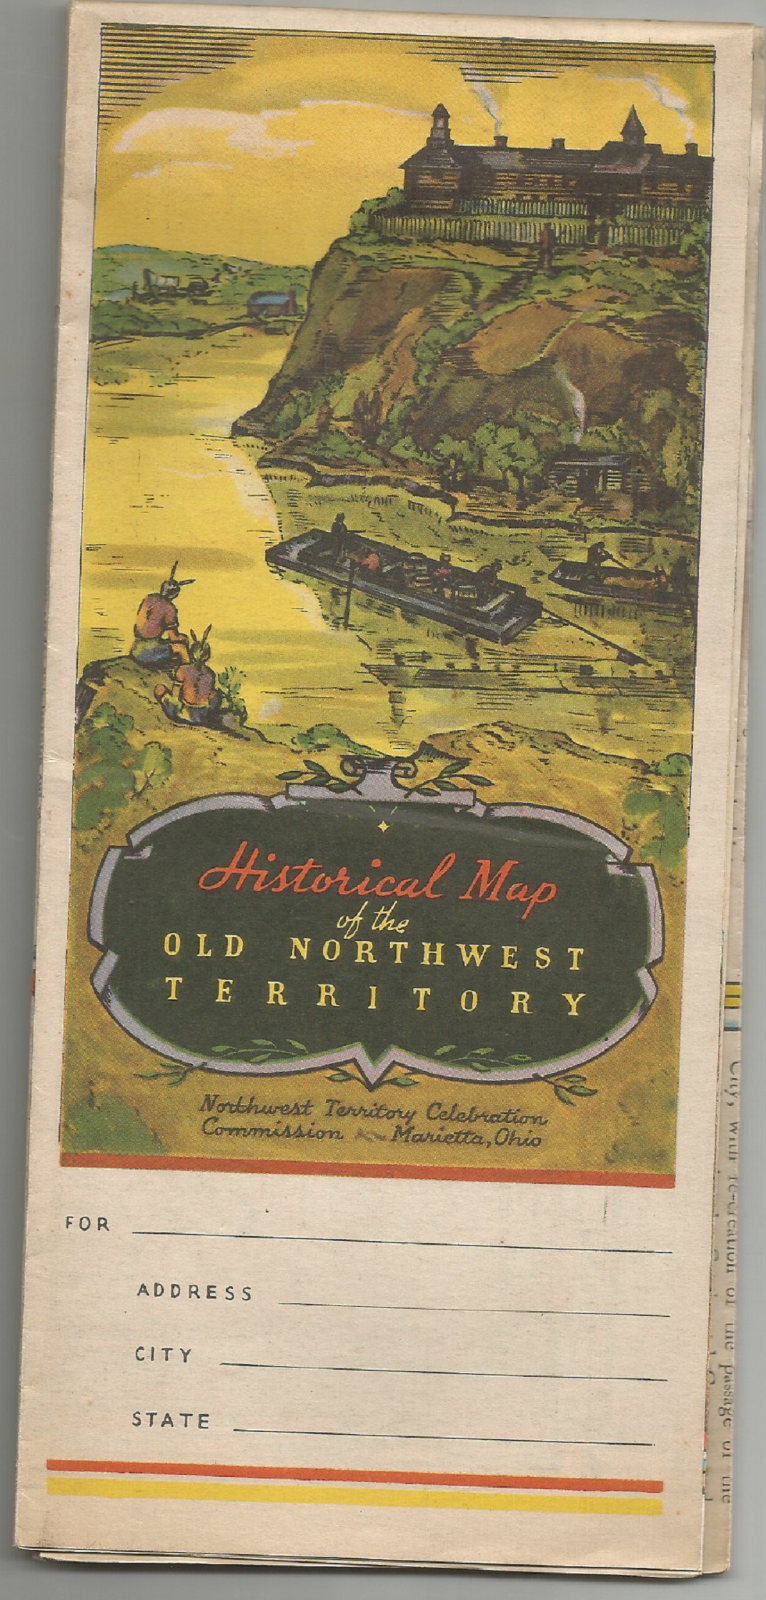 VINTAGE HISTORICAL MAP OF THE OLD NORTHWEST TERRITORY WHEN FDR WAS PRESIDENT